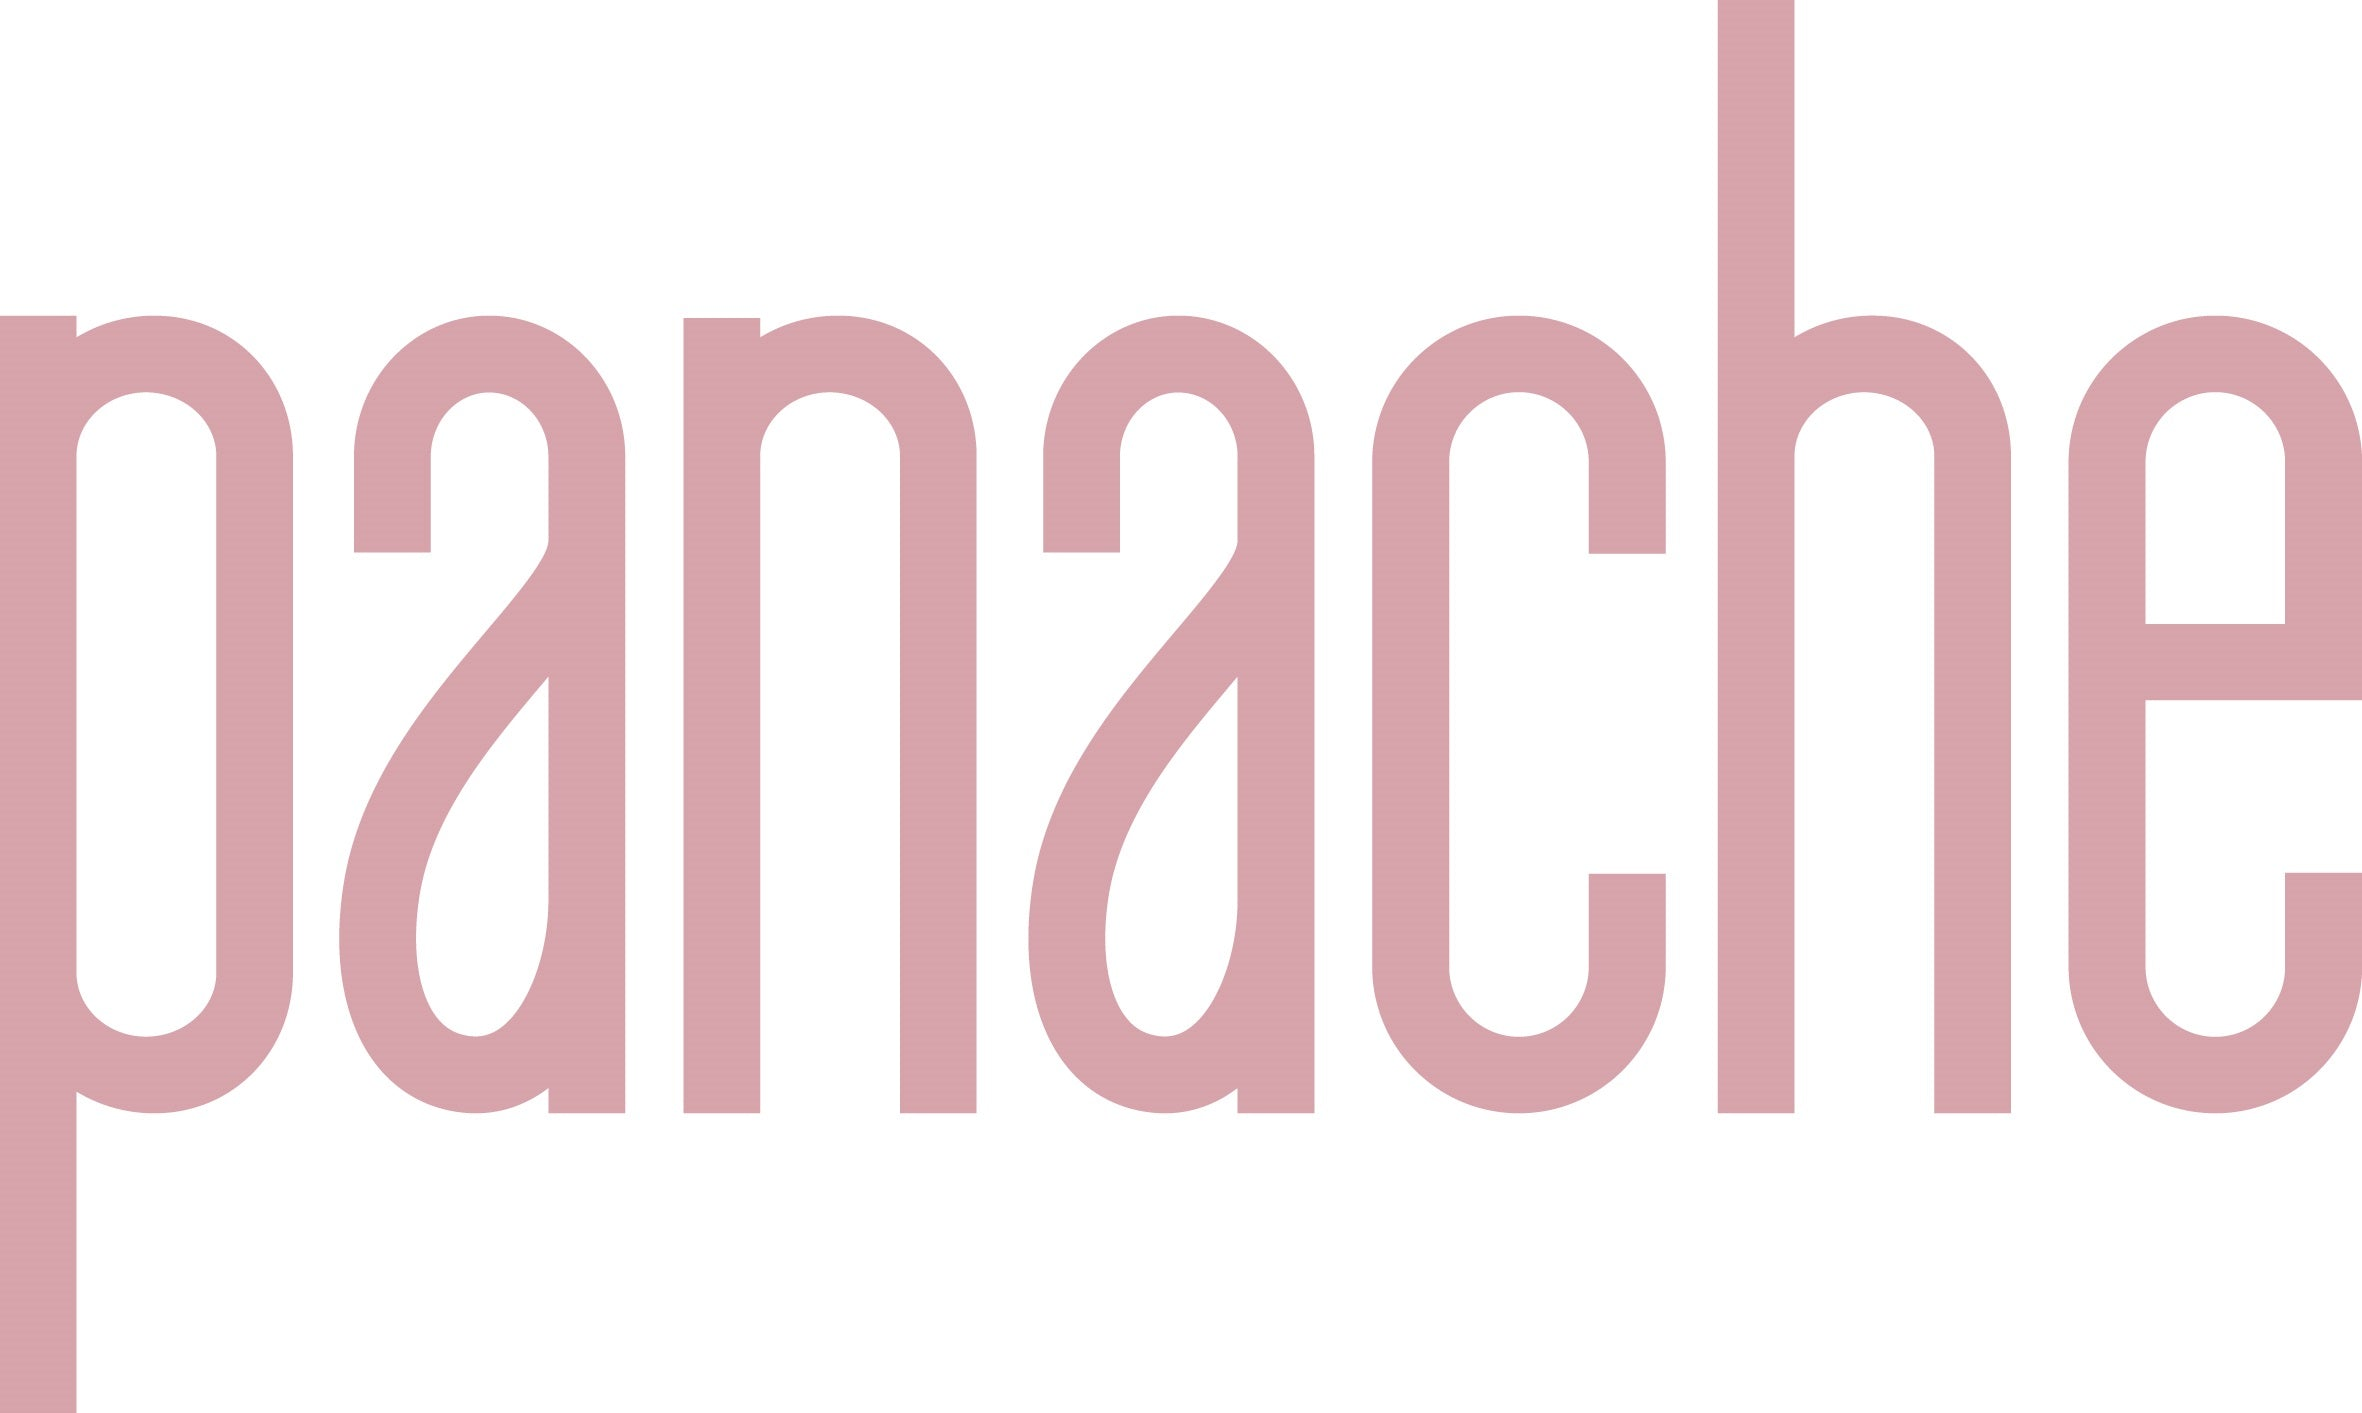 This is a(n) image of panache lingerie logo